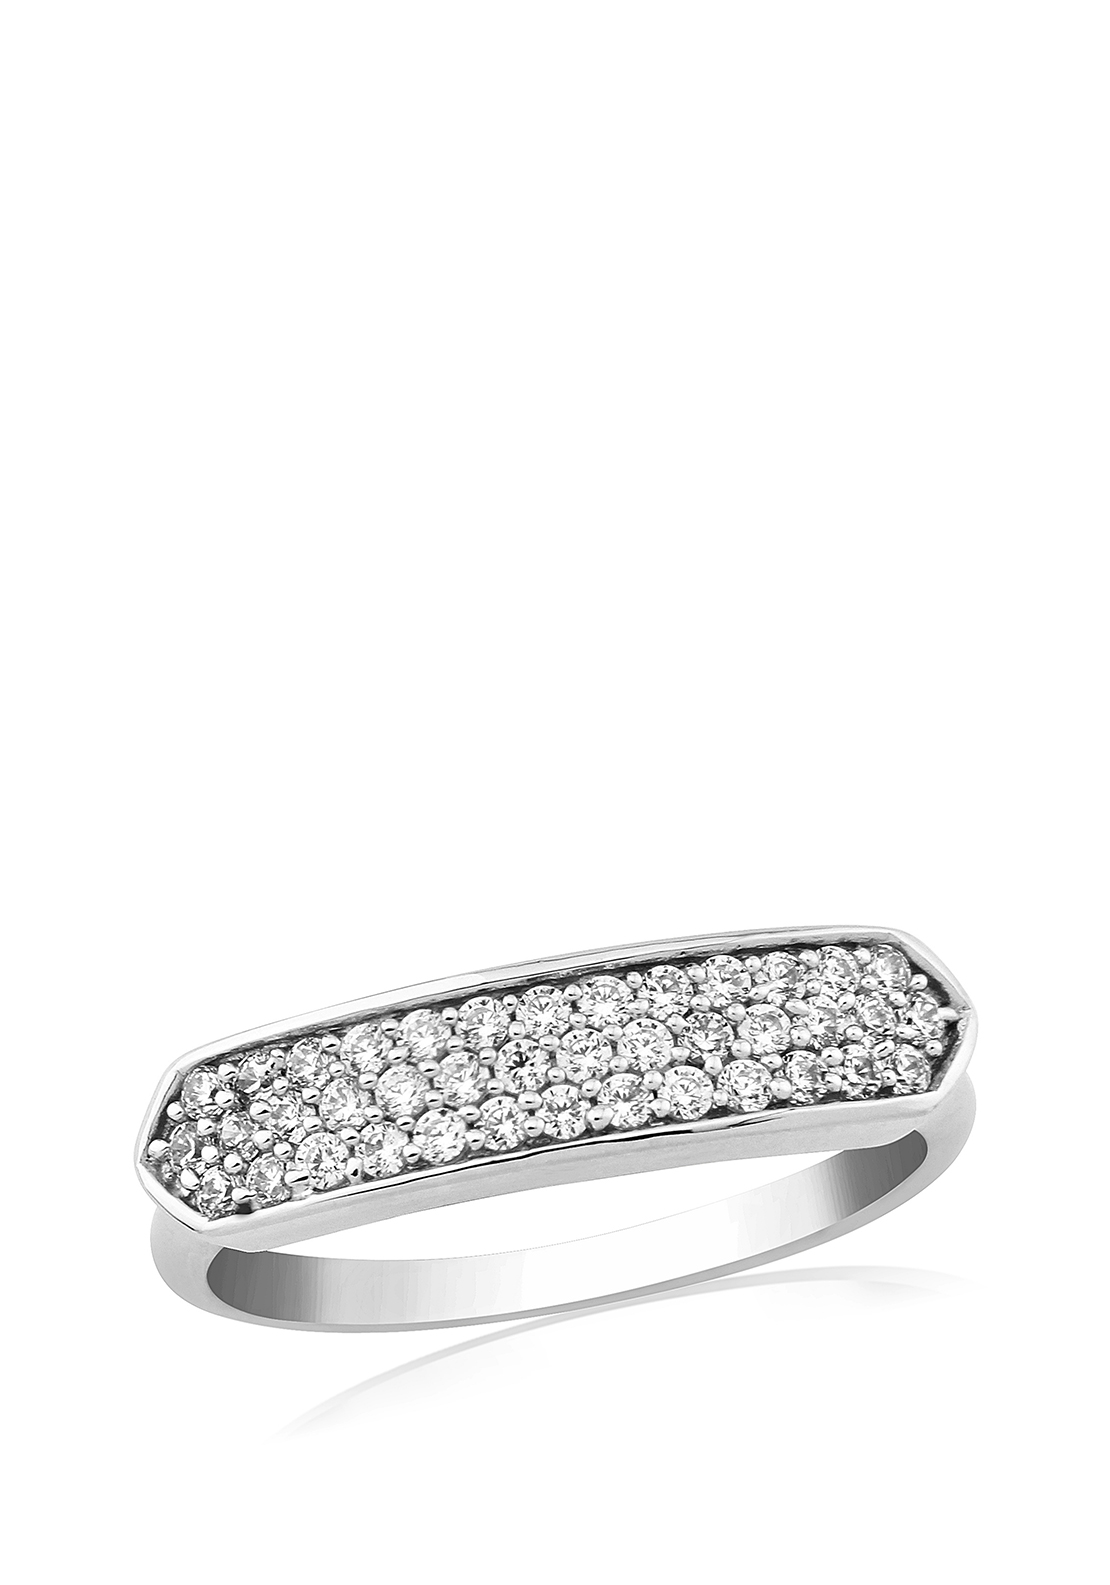 Waterford Crystal Pave Set Ring, Silver